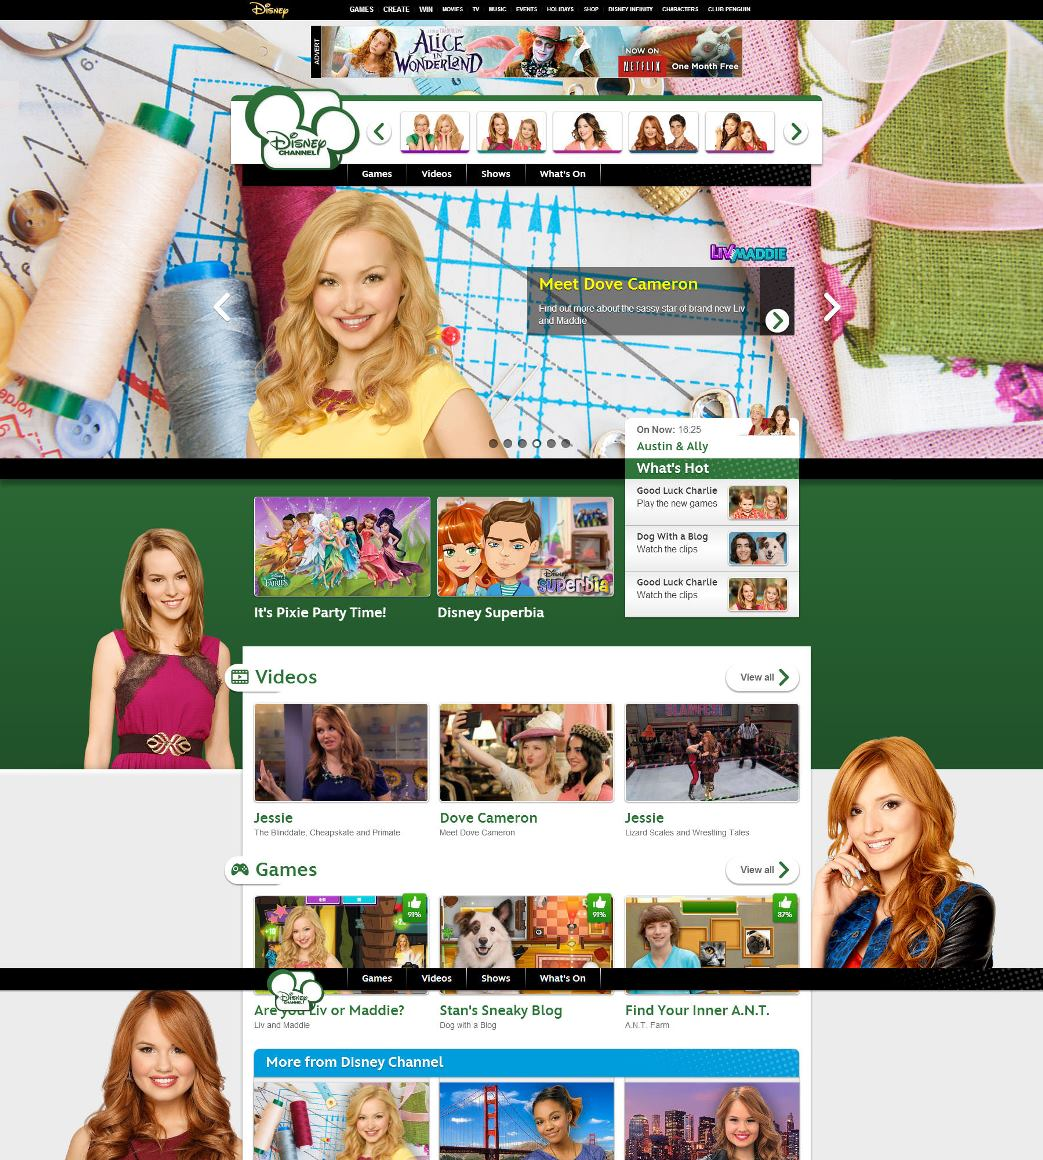 Improving engagement on the Disney Channel website